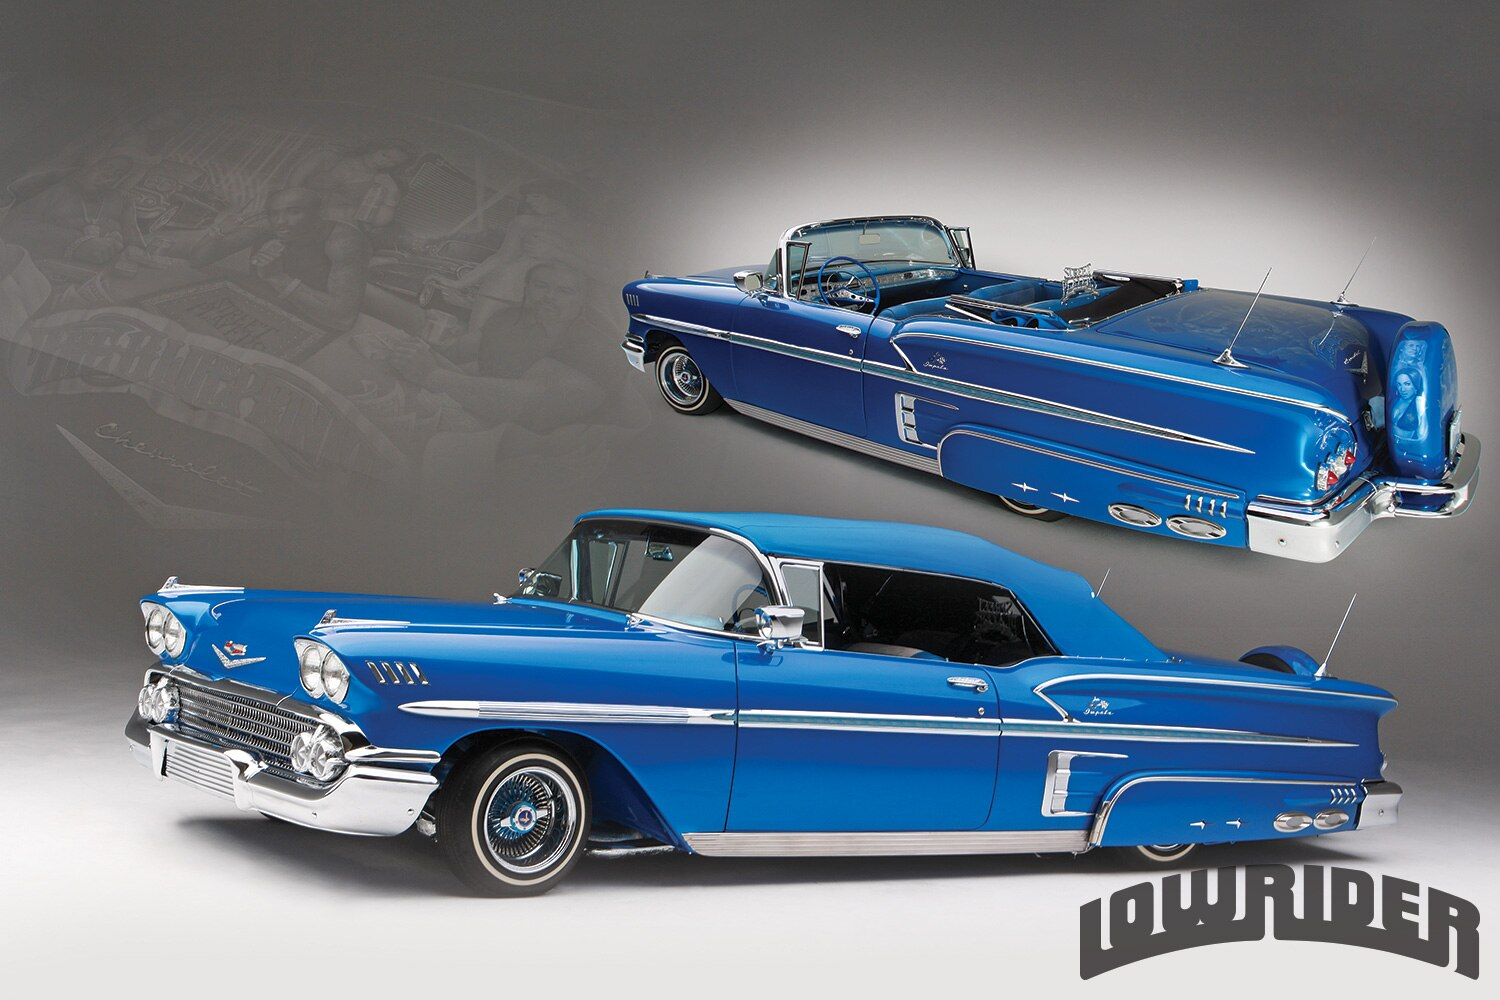 1958-chevrolet-impala-convertible-collage1